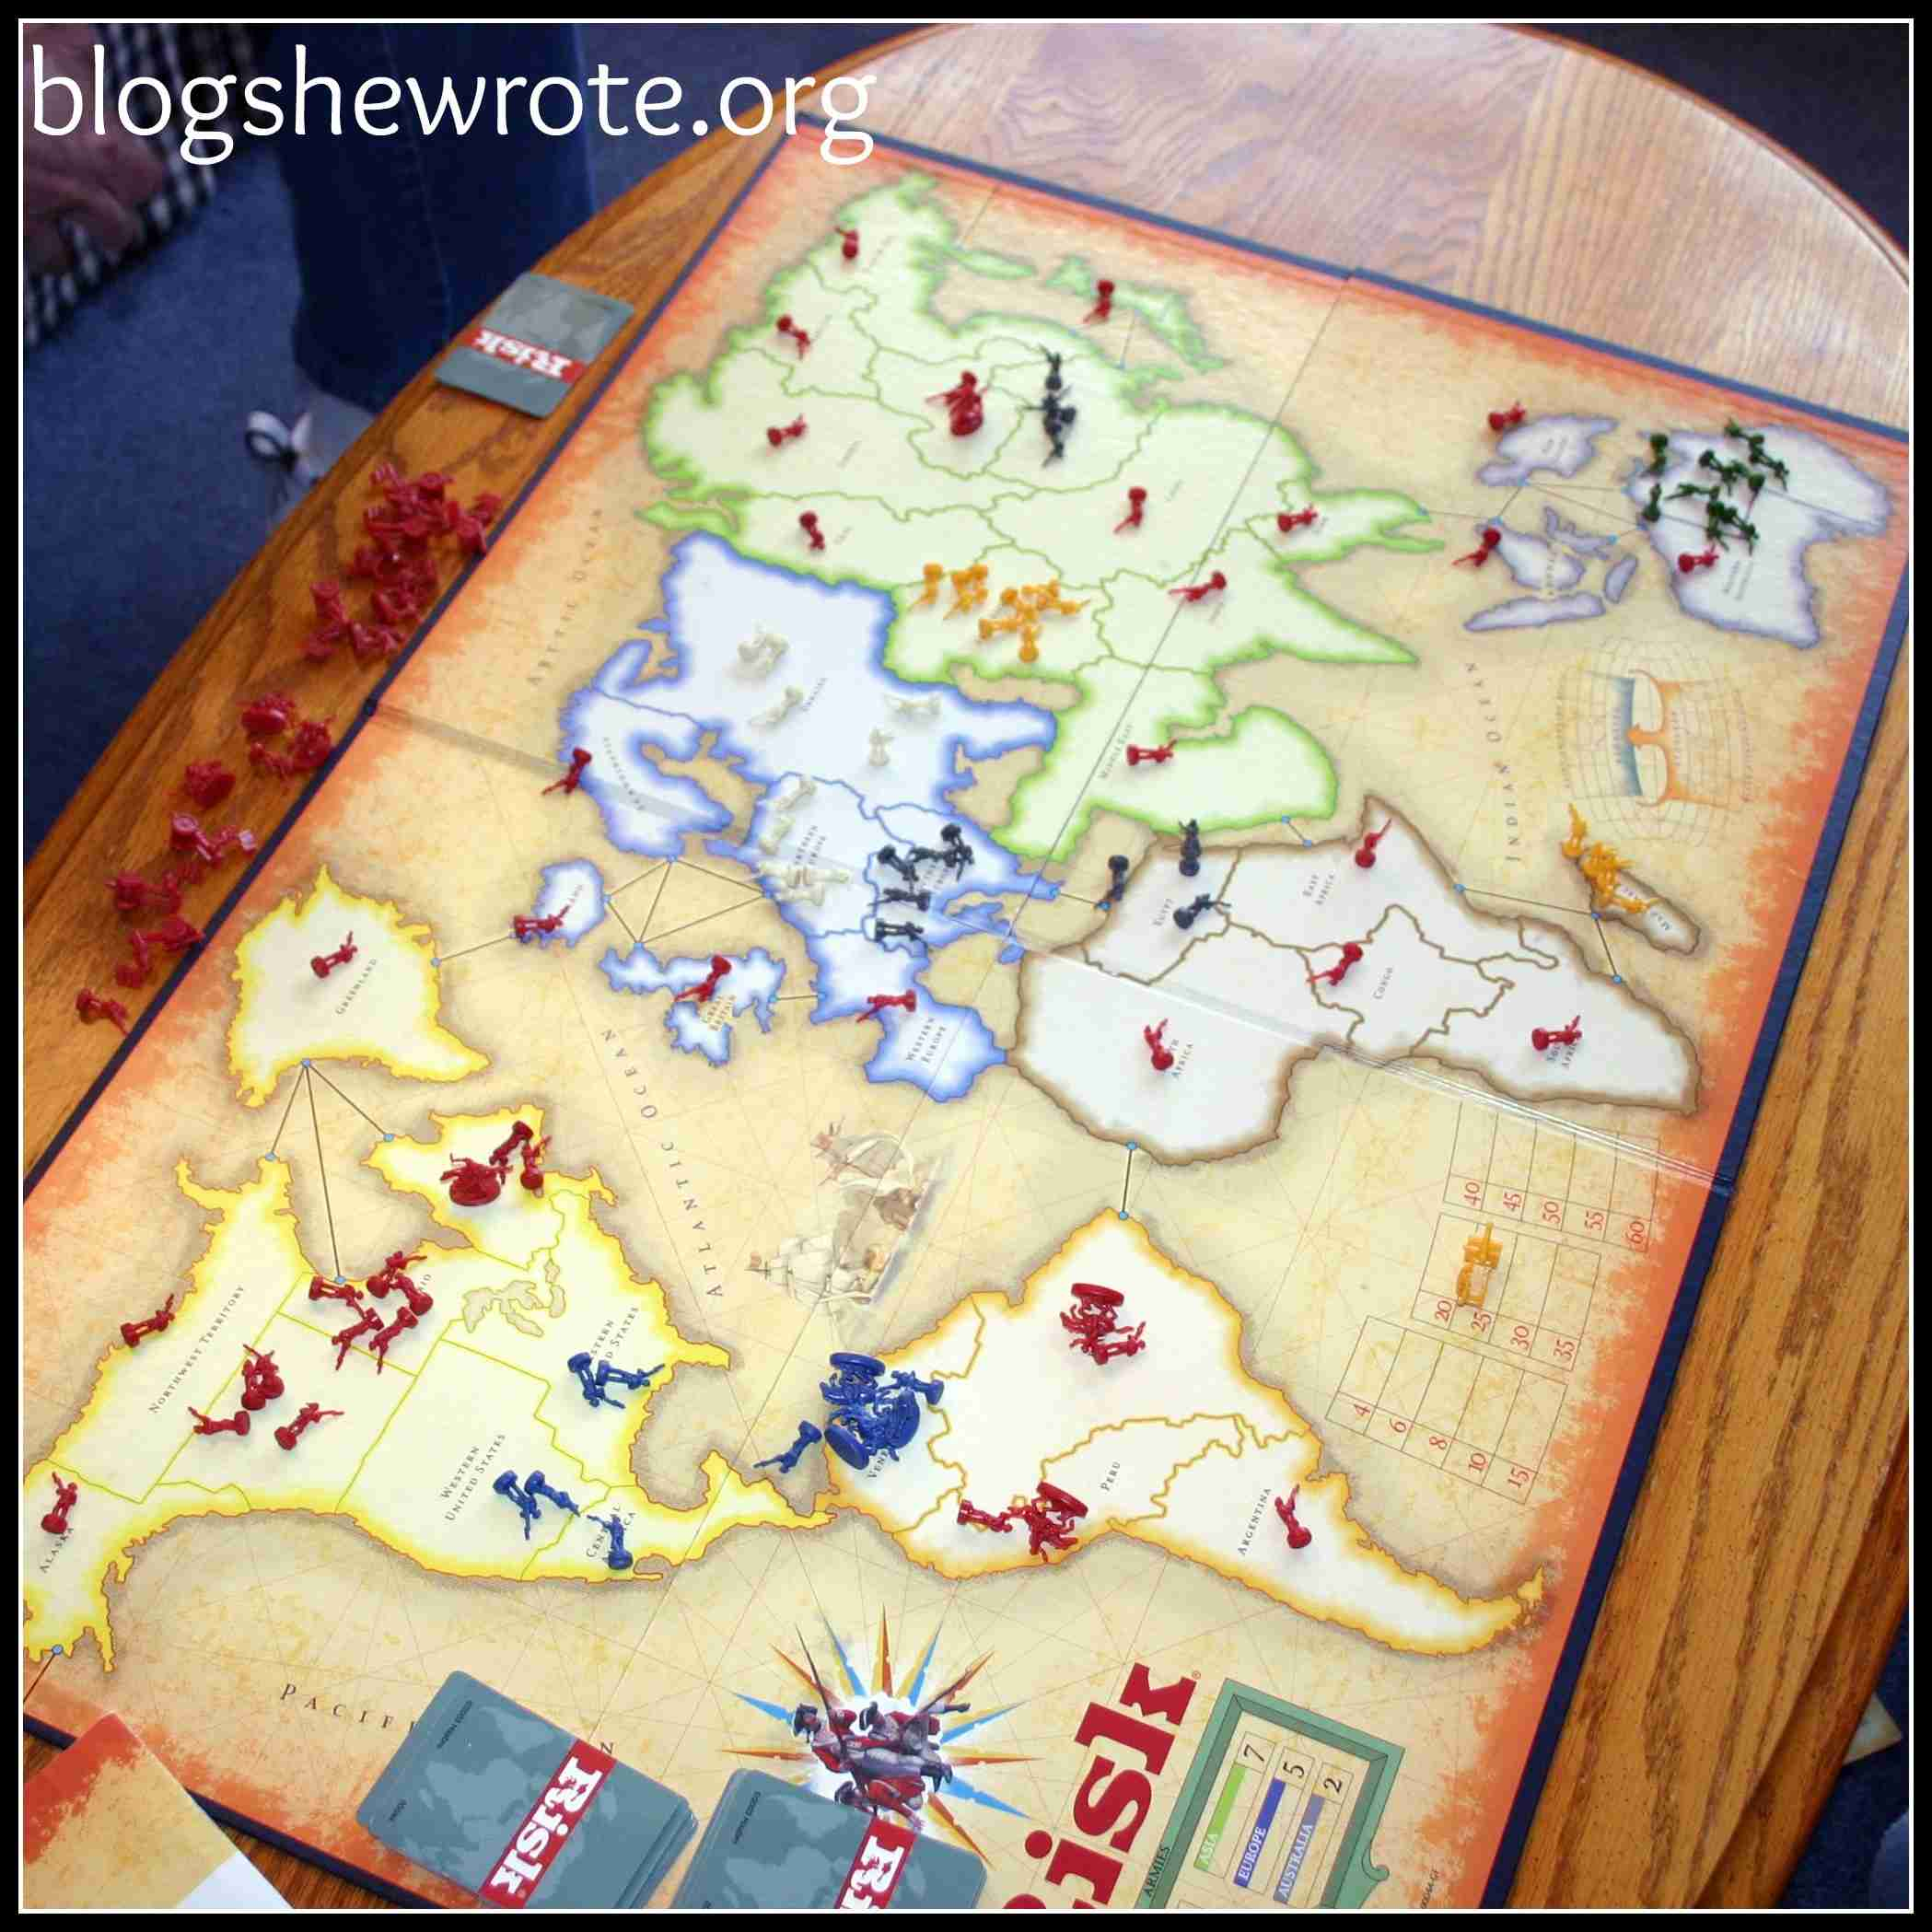 Blog She Wrote: Adventures with Games